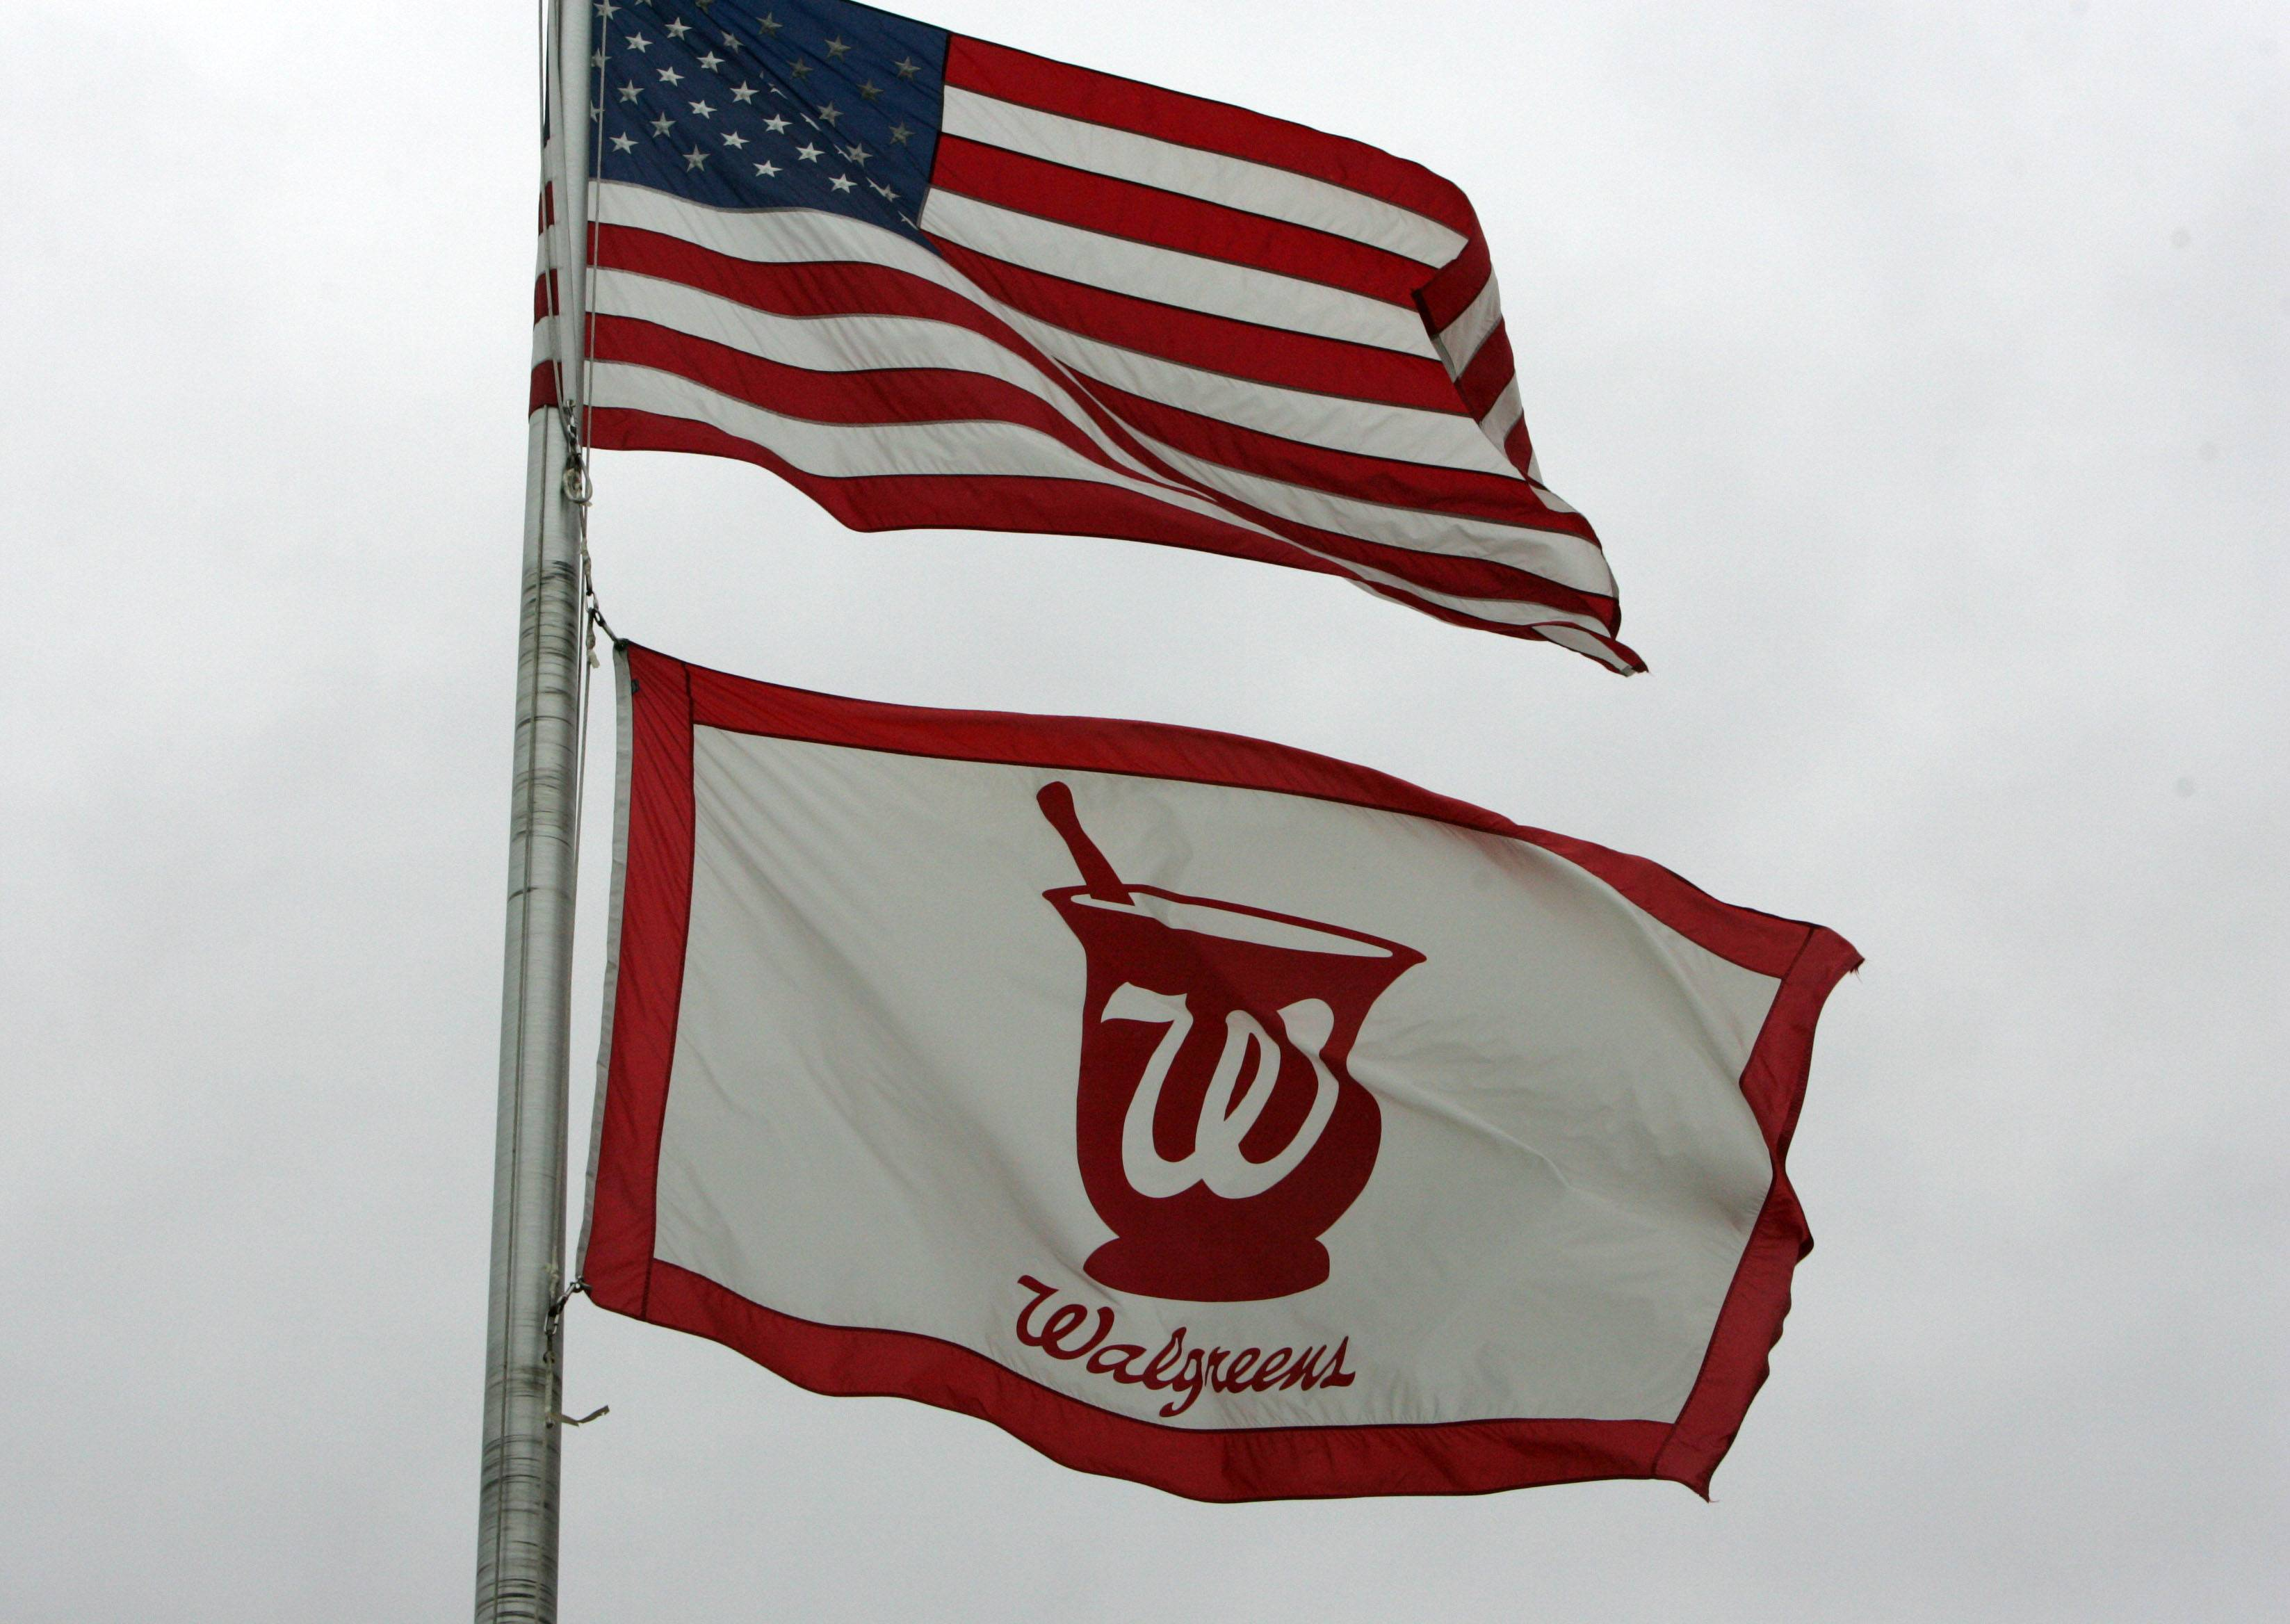 Walgreen corporate headquarters flag with the American flag in Deerfield.